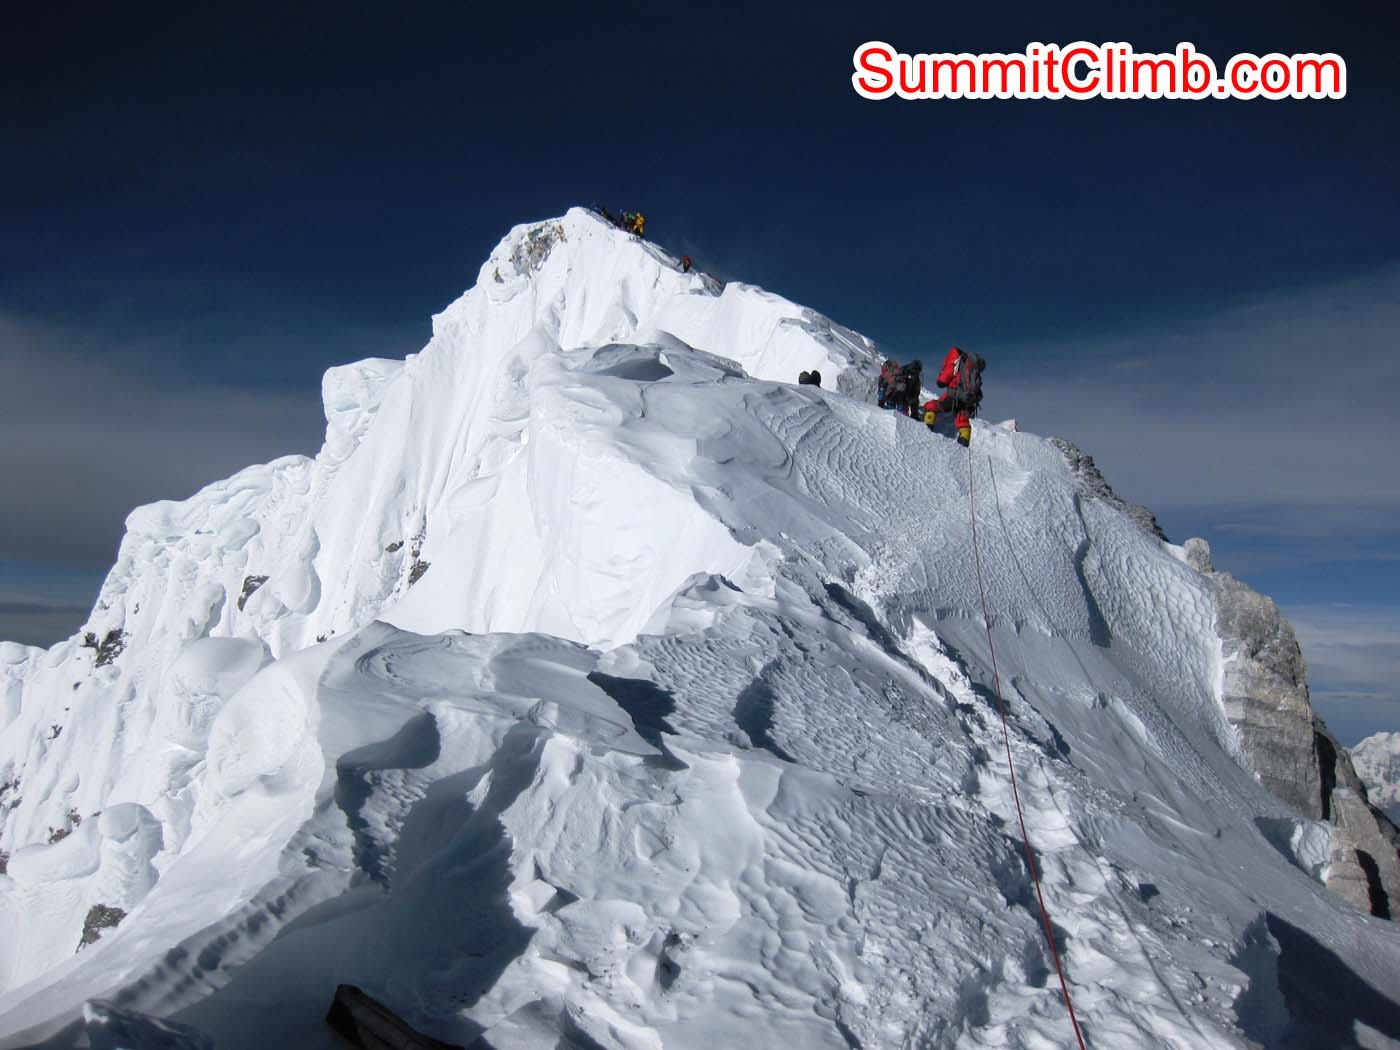 Almost to the Top of Everest - Photo Mia Graeffe